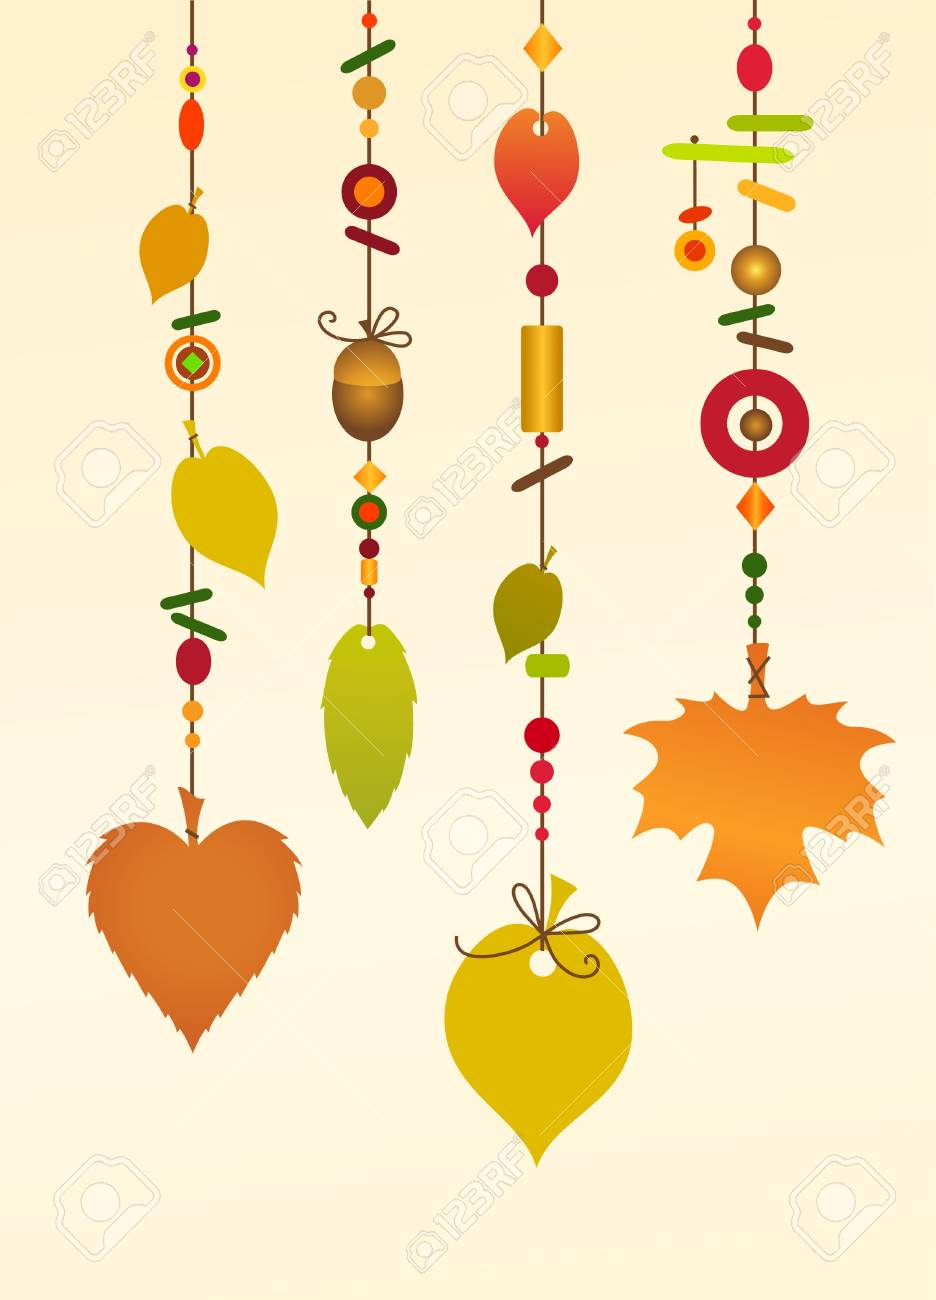 Illustration Of Decorative Wind Chimes With Floral Leaf Shape